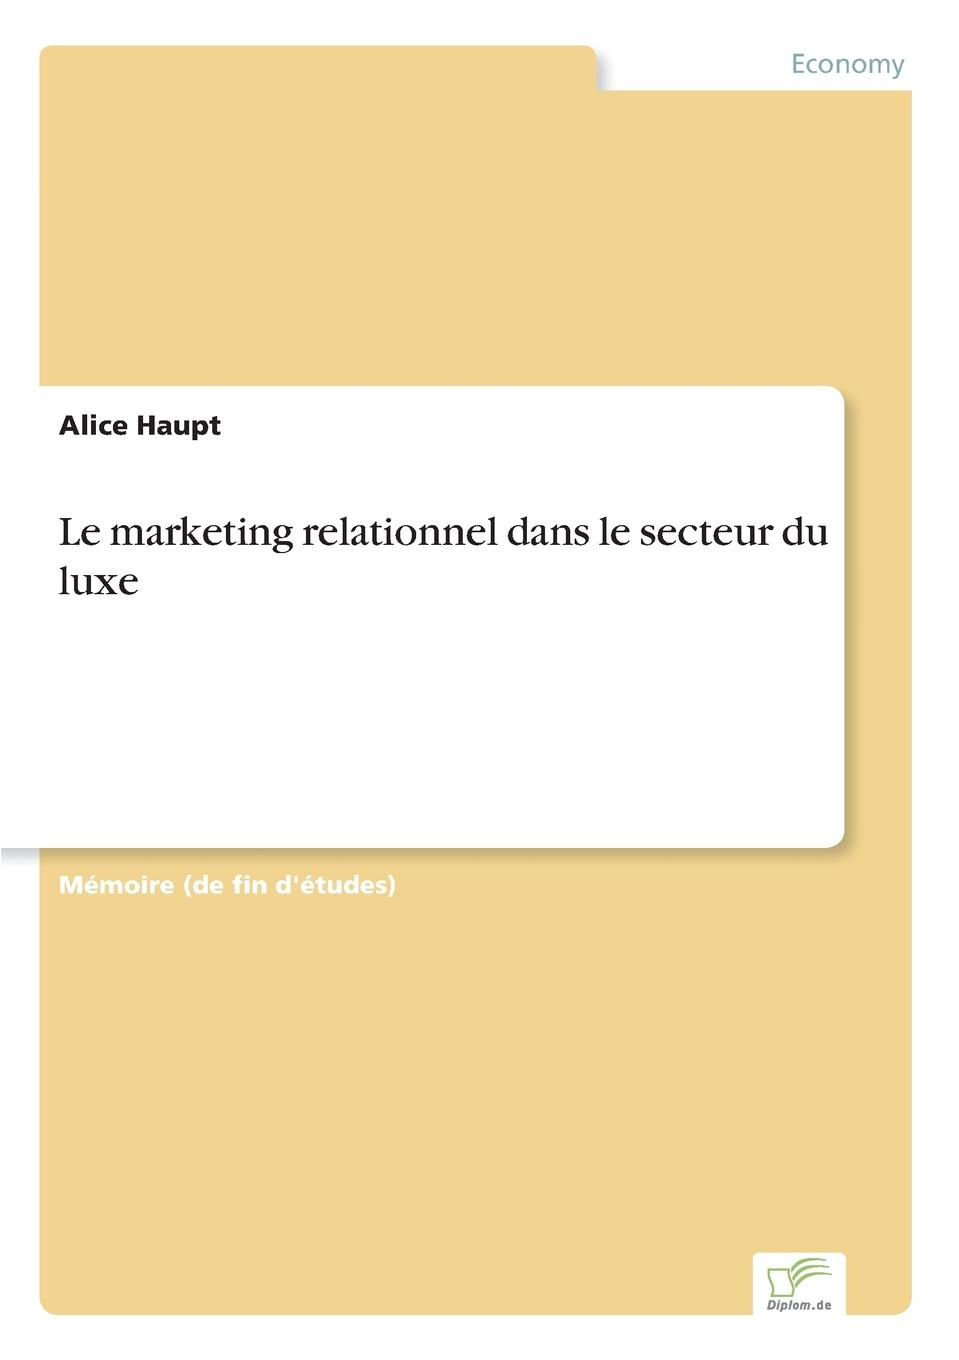 Alice Haupt Le marketing relationnel dans le secteur du luxe